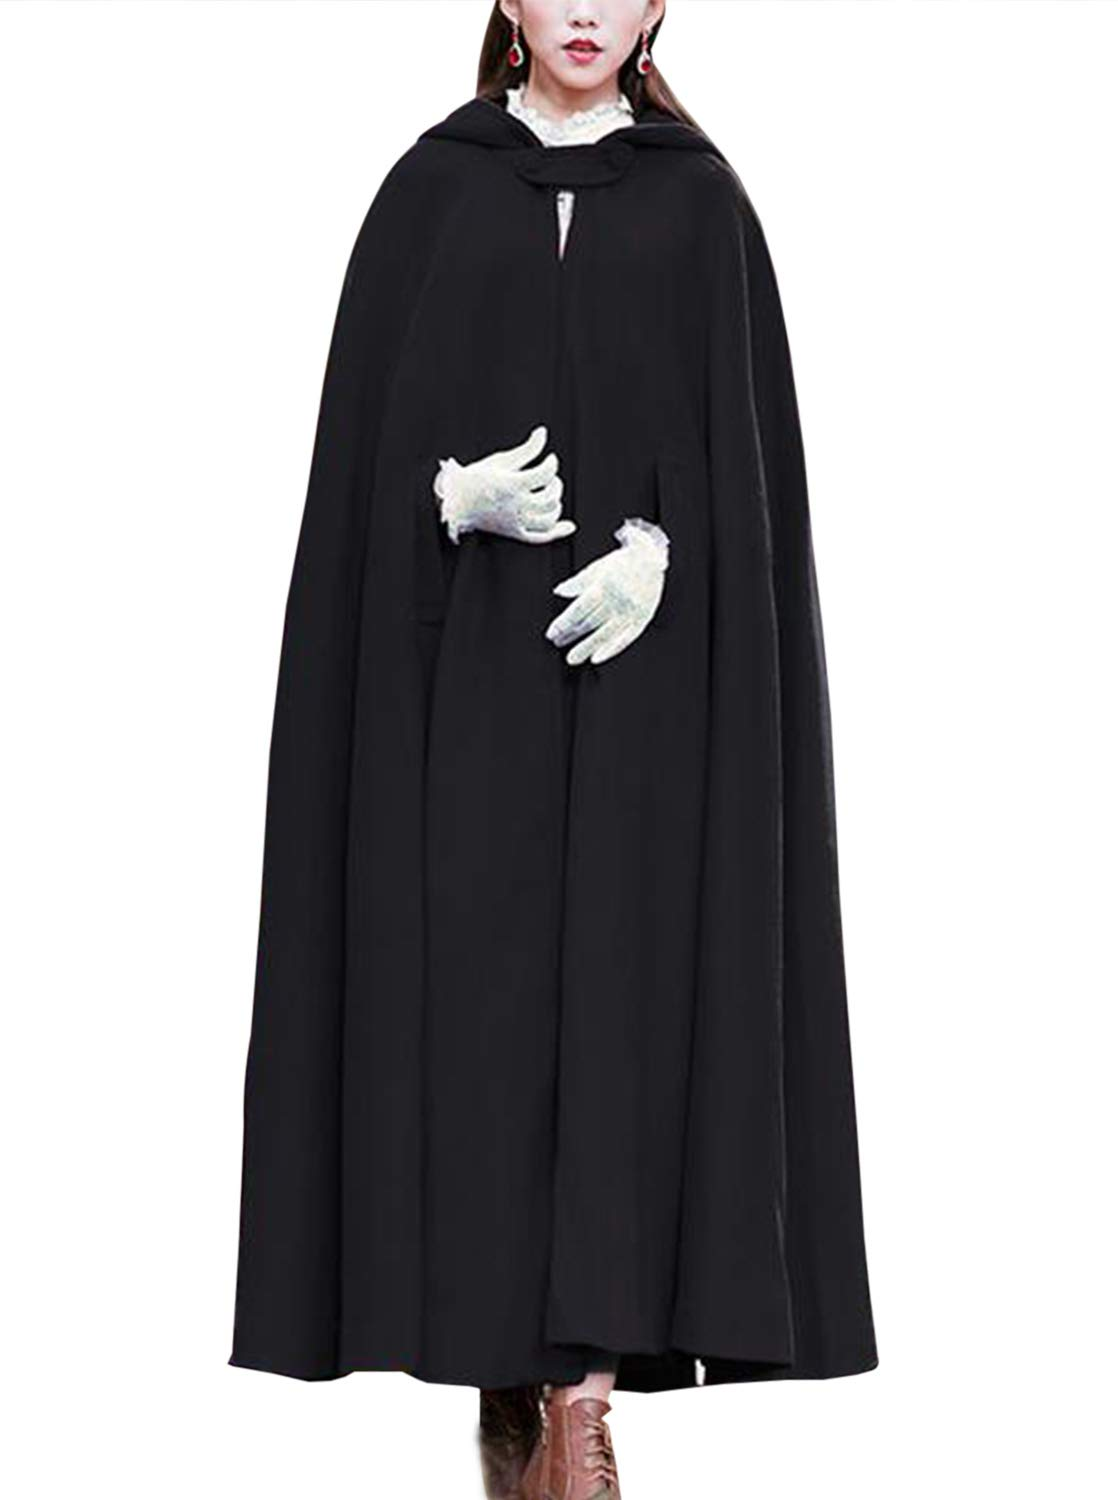 Gihuo Women's Wool Hooded Cape Solid Color Maxi Cloak Trench Coat (Black, One Size) by Gihuo